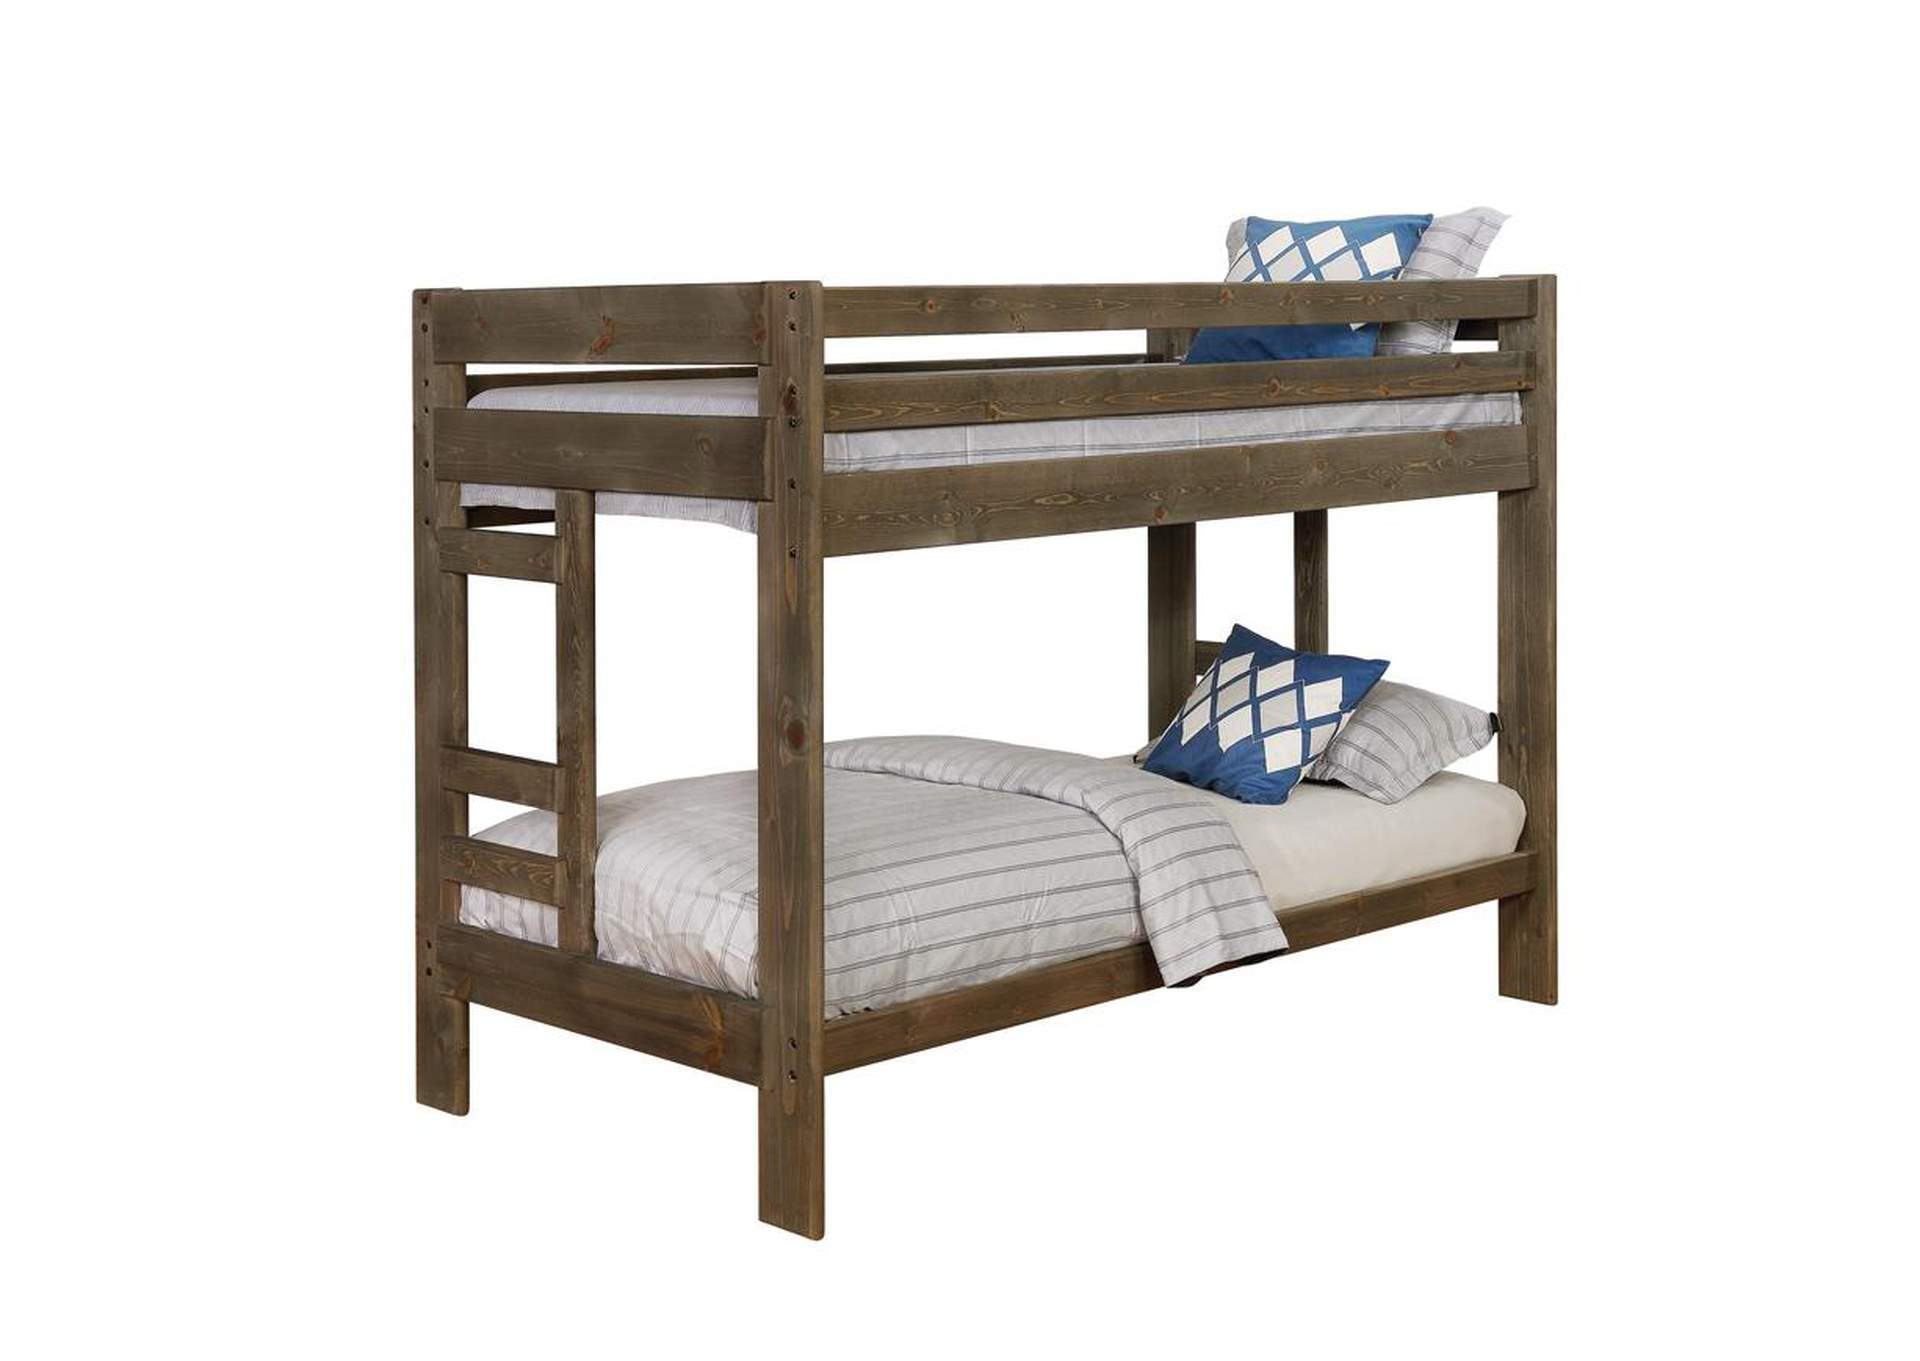 Judge Gray Wrangle Hill Gun Smoke Twin/Twin Bunk Bed,Coaster Furniture